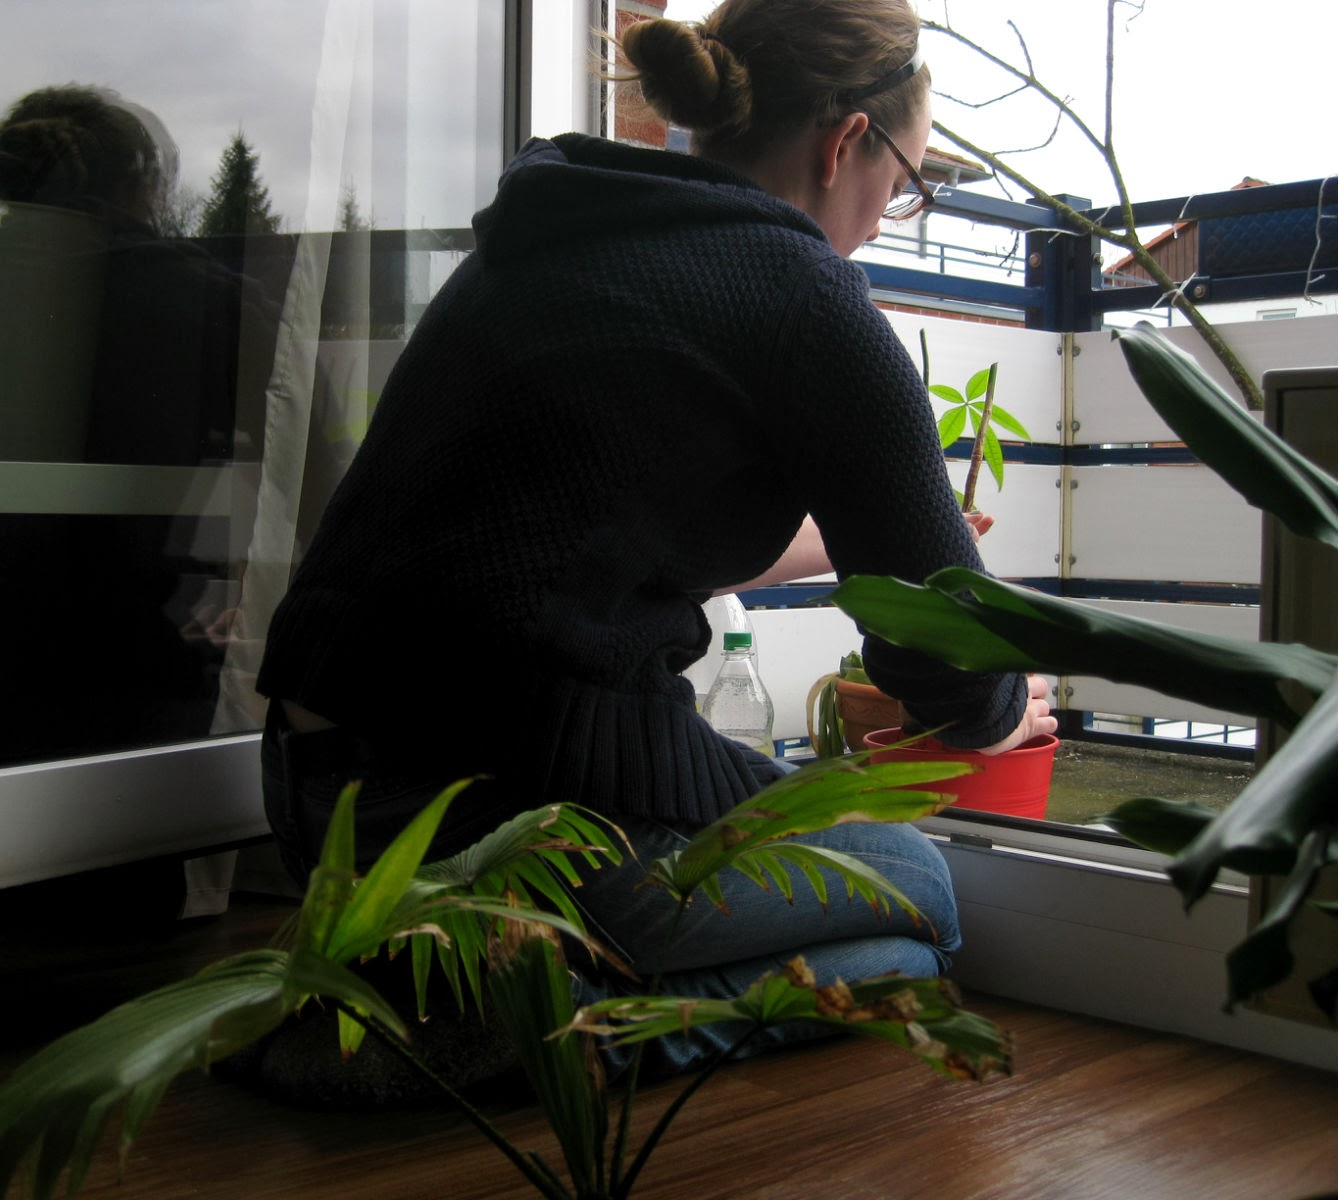 Re-potting plants on the balcony